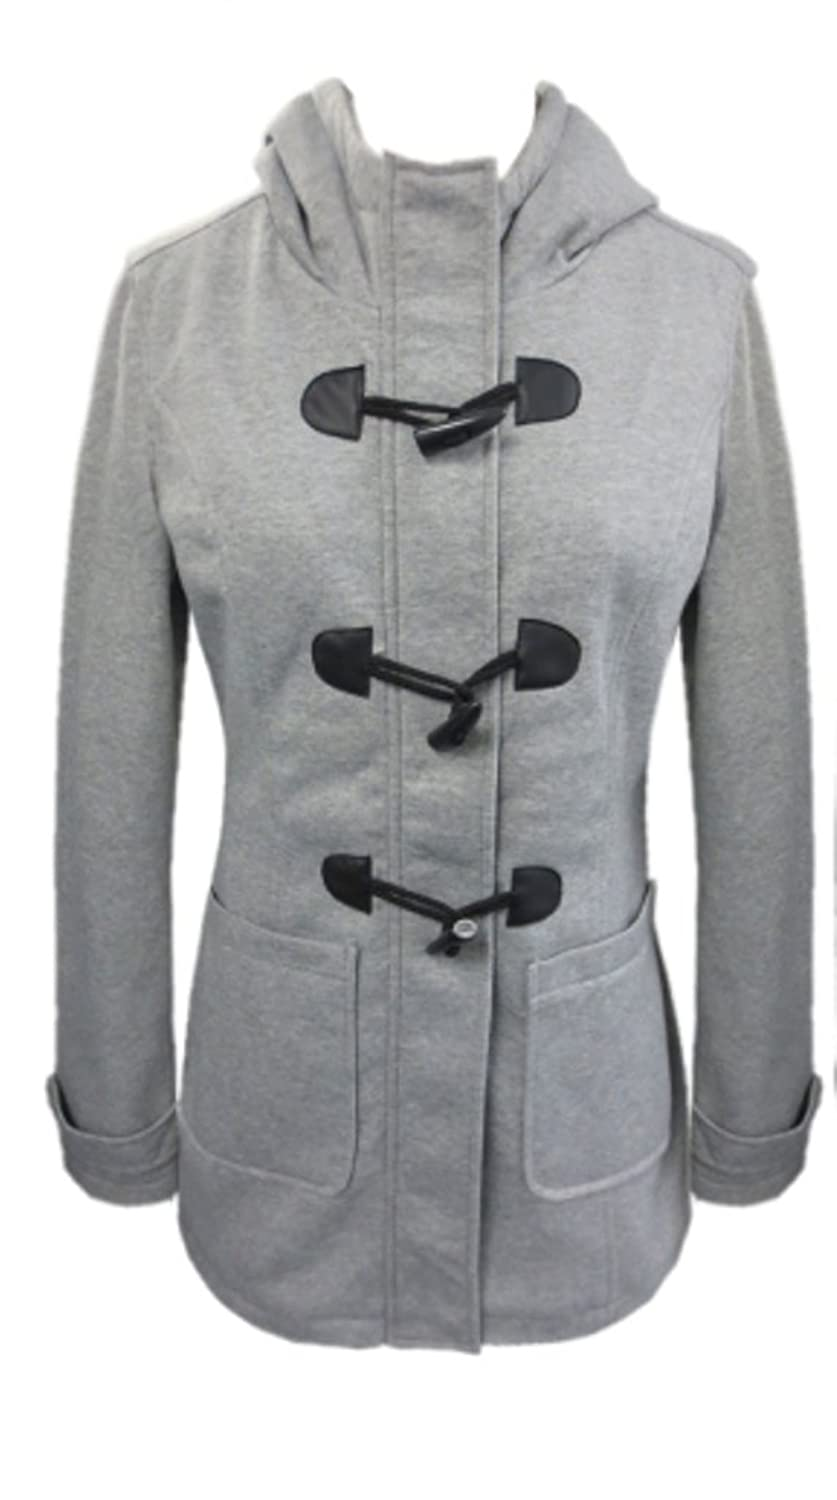 YOKI Women's Heather Grey Hooded Fleece Toggle Jacket Winter Coat ...